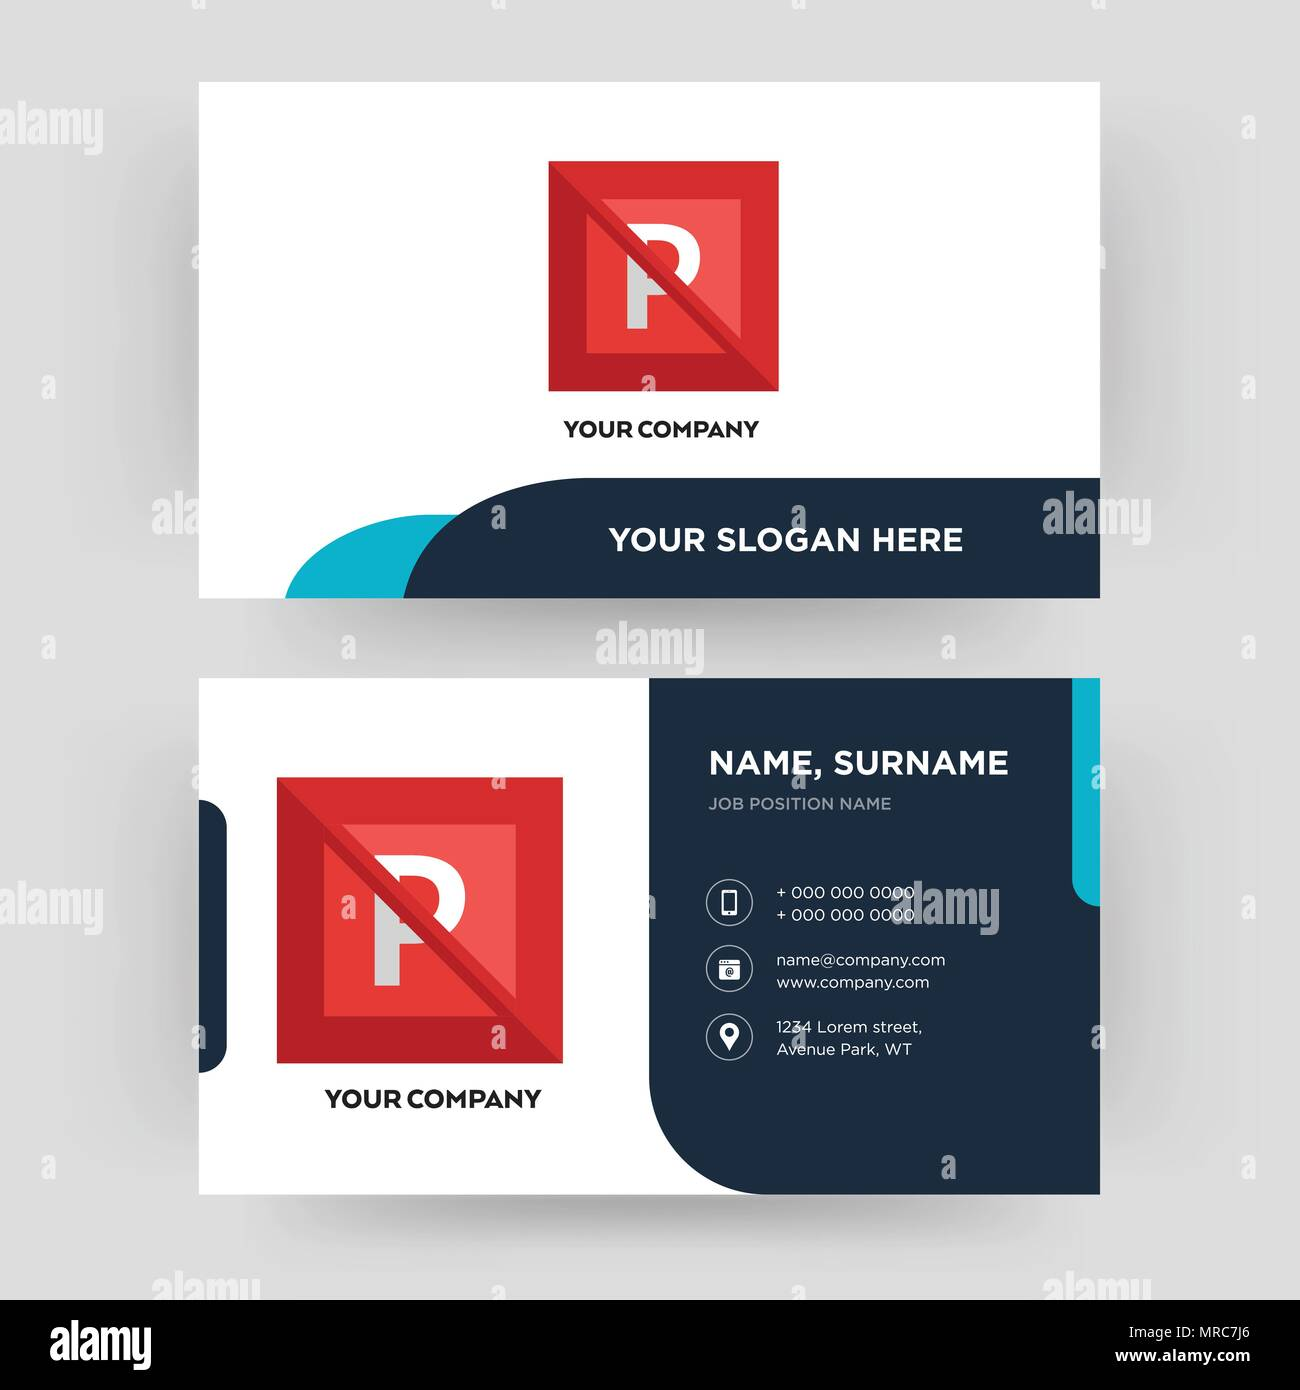 No Parking Business Card Design Template Visiting For Your Company Modern Creative And Clean Identity Vector